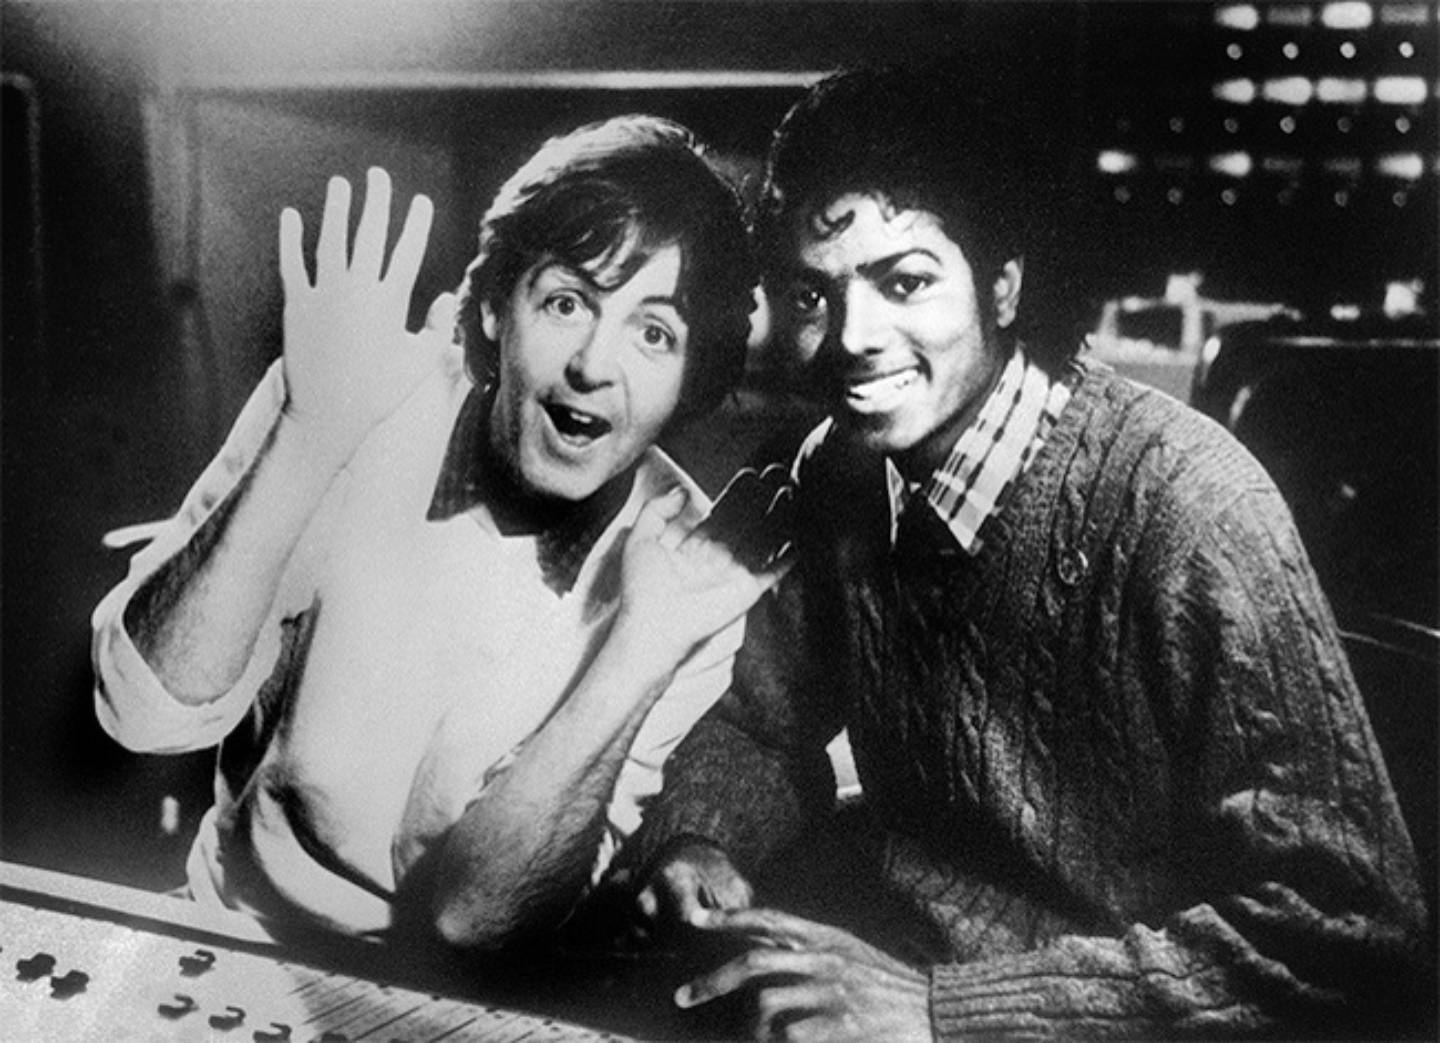 Michael Jackson and Paul McCartney in the studio 1983